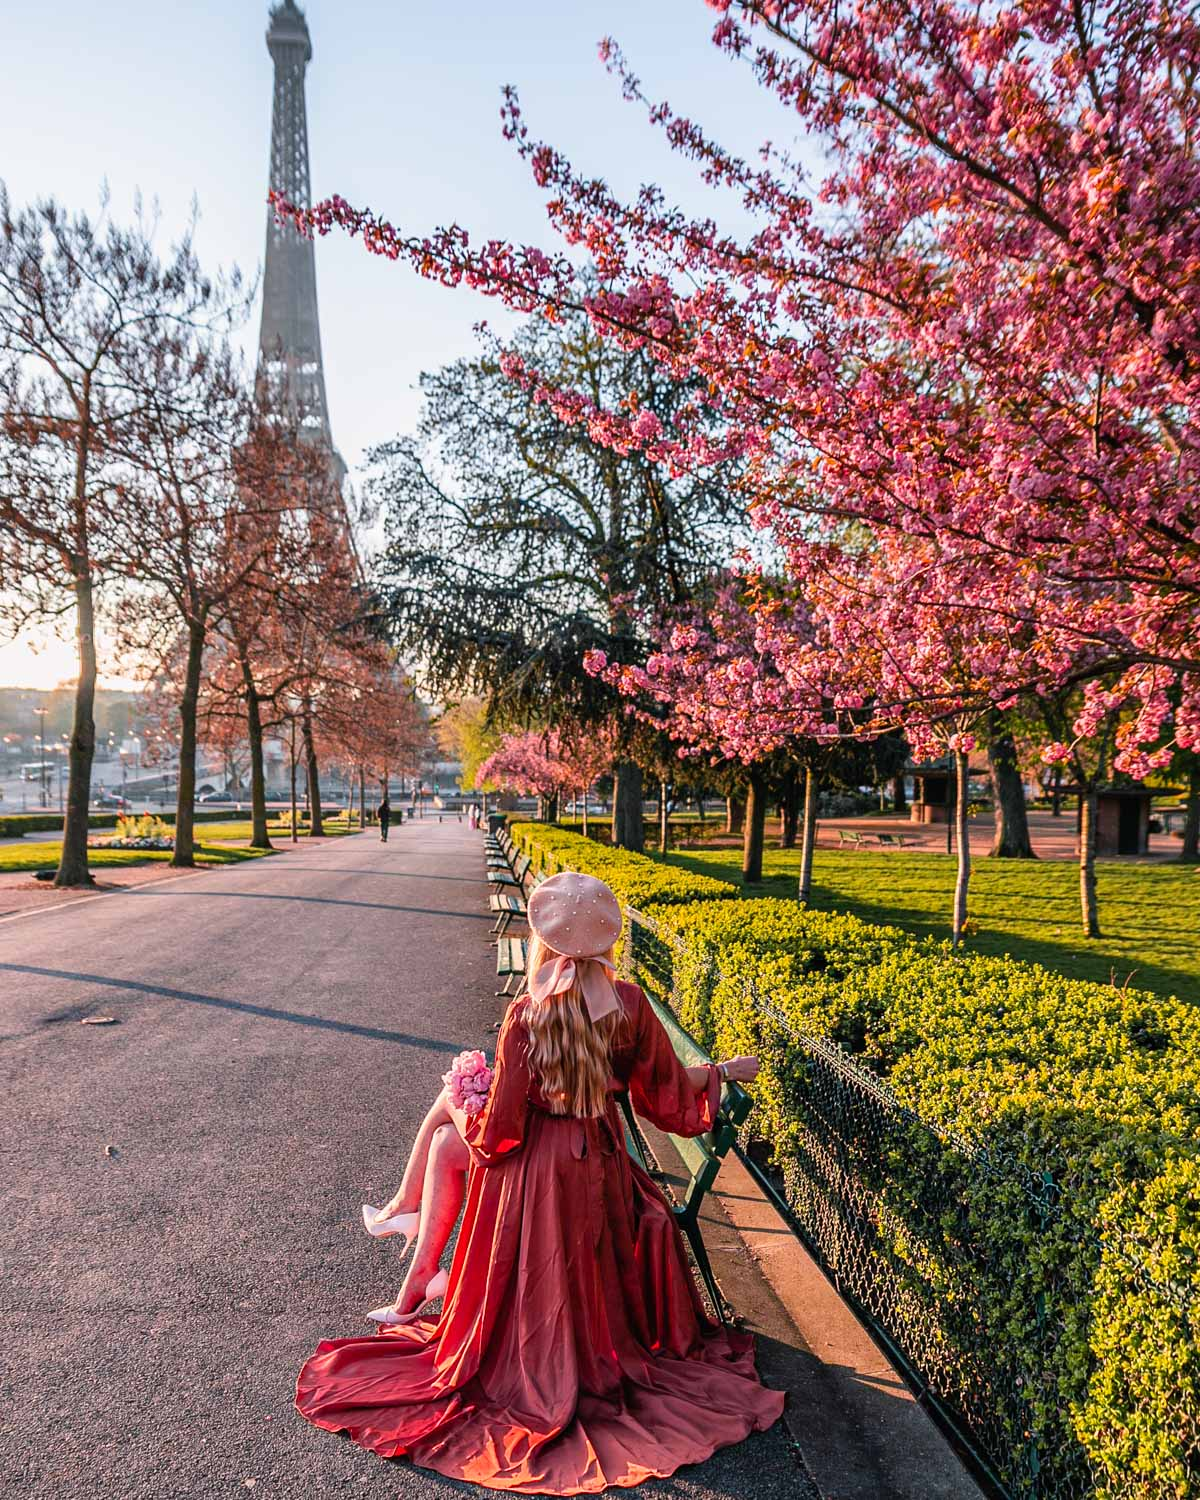 Cherry blossoms at the Eiffel Tower - Paris